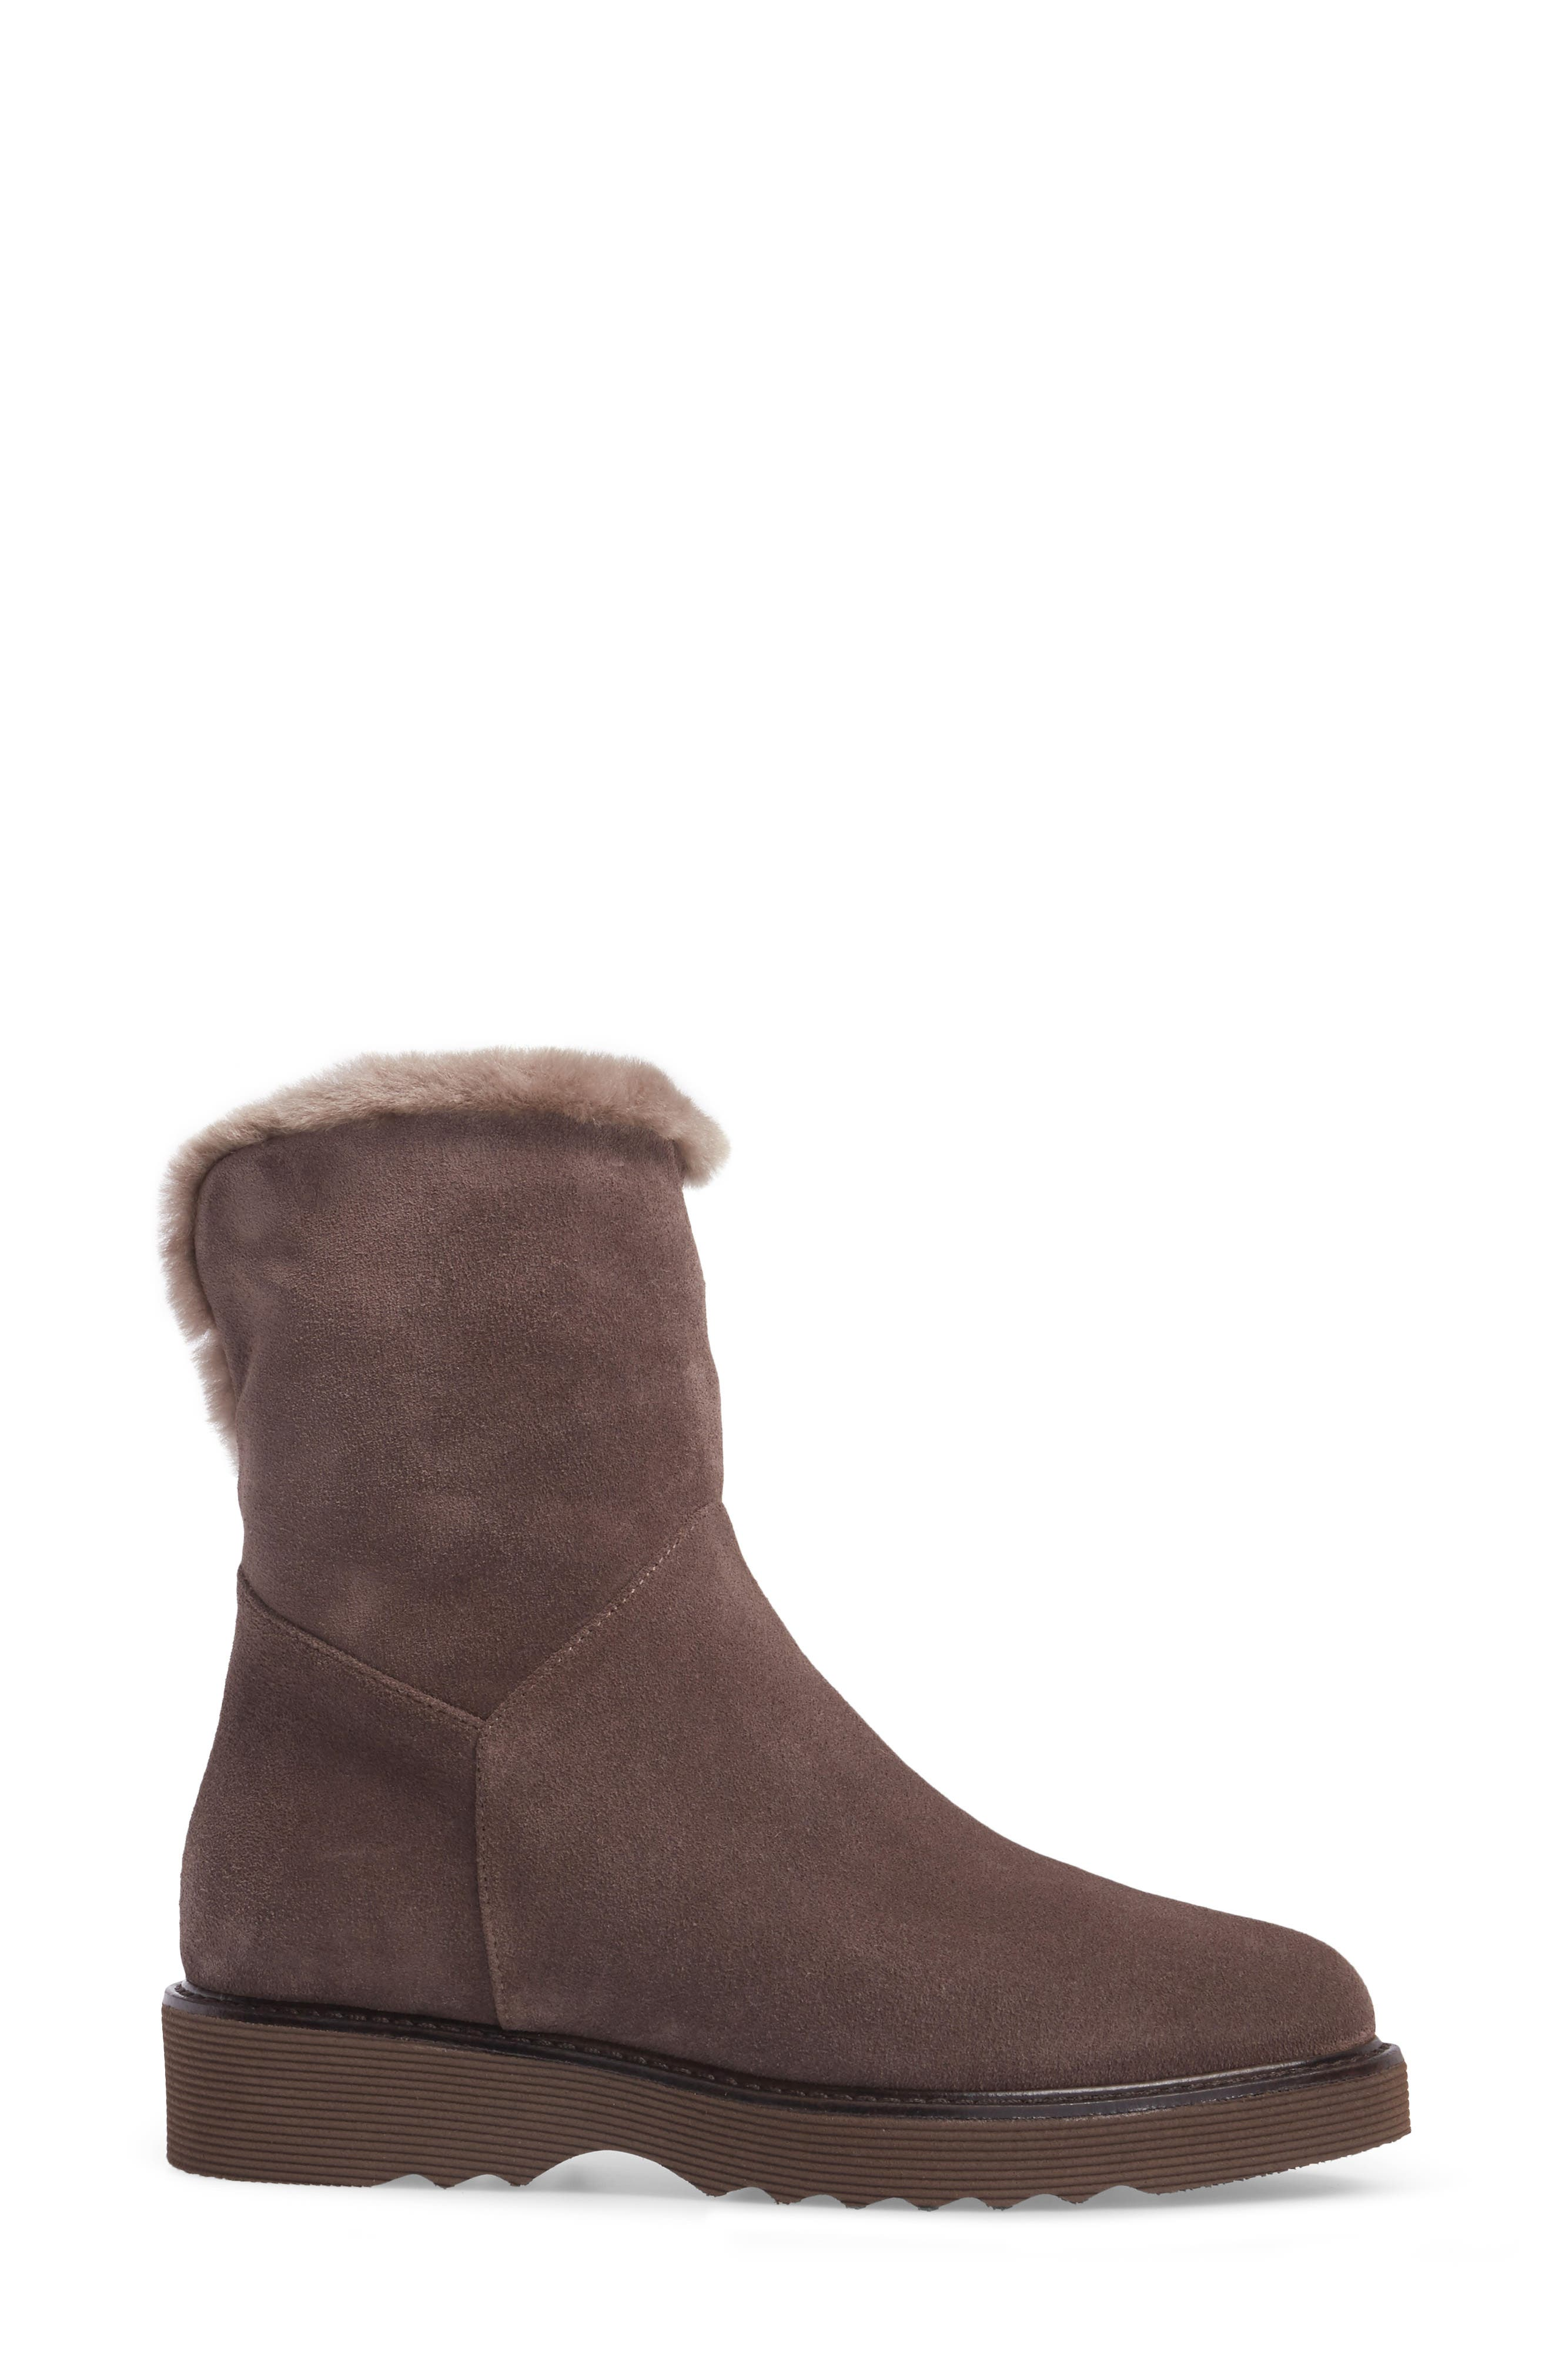 Kimberly Weatherproof Genuine Shearling Bootie,                             Alternate thumbnail 11, color,